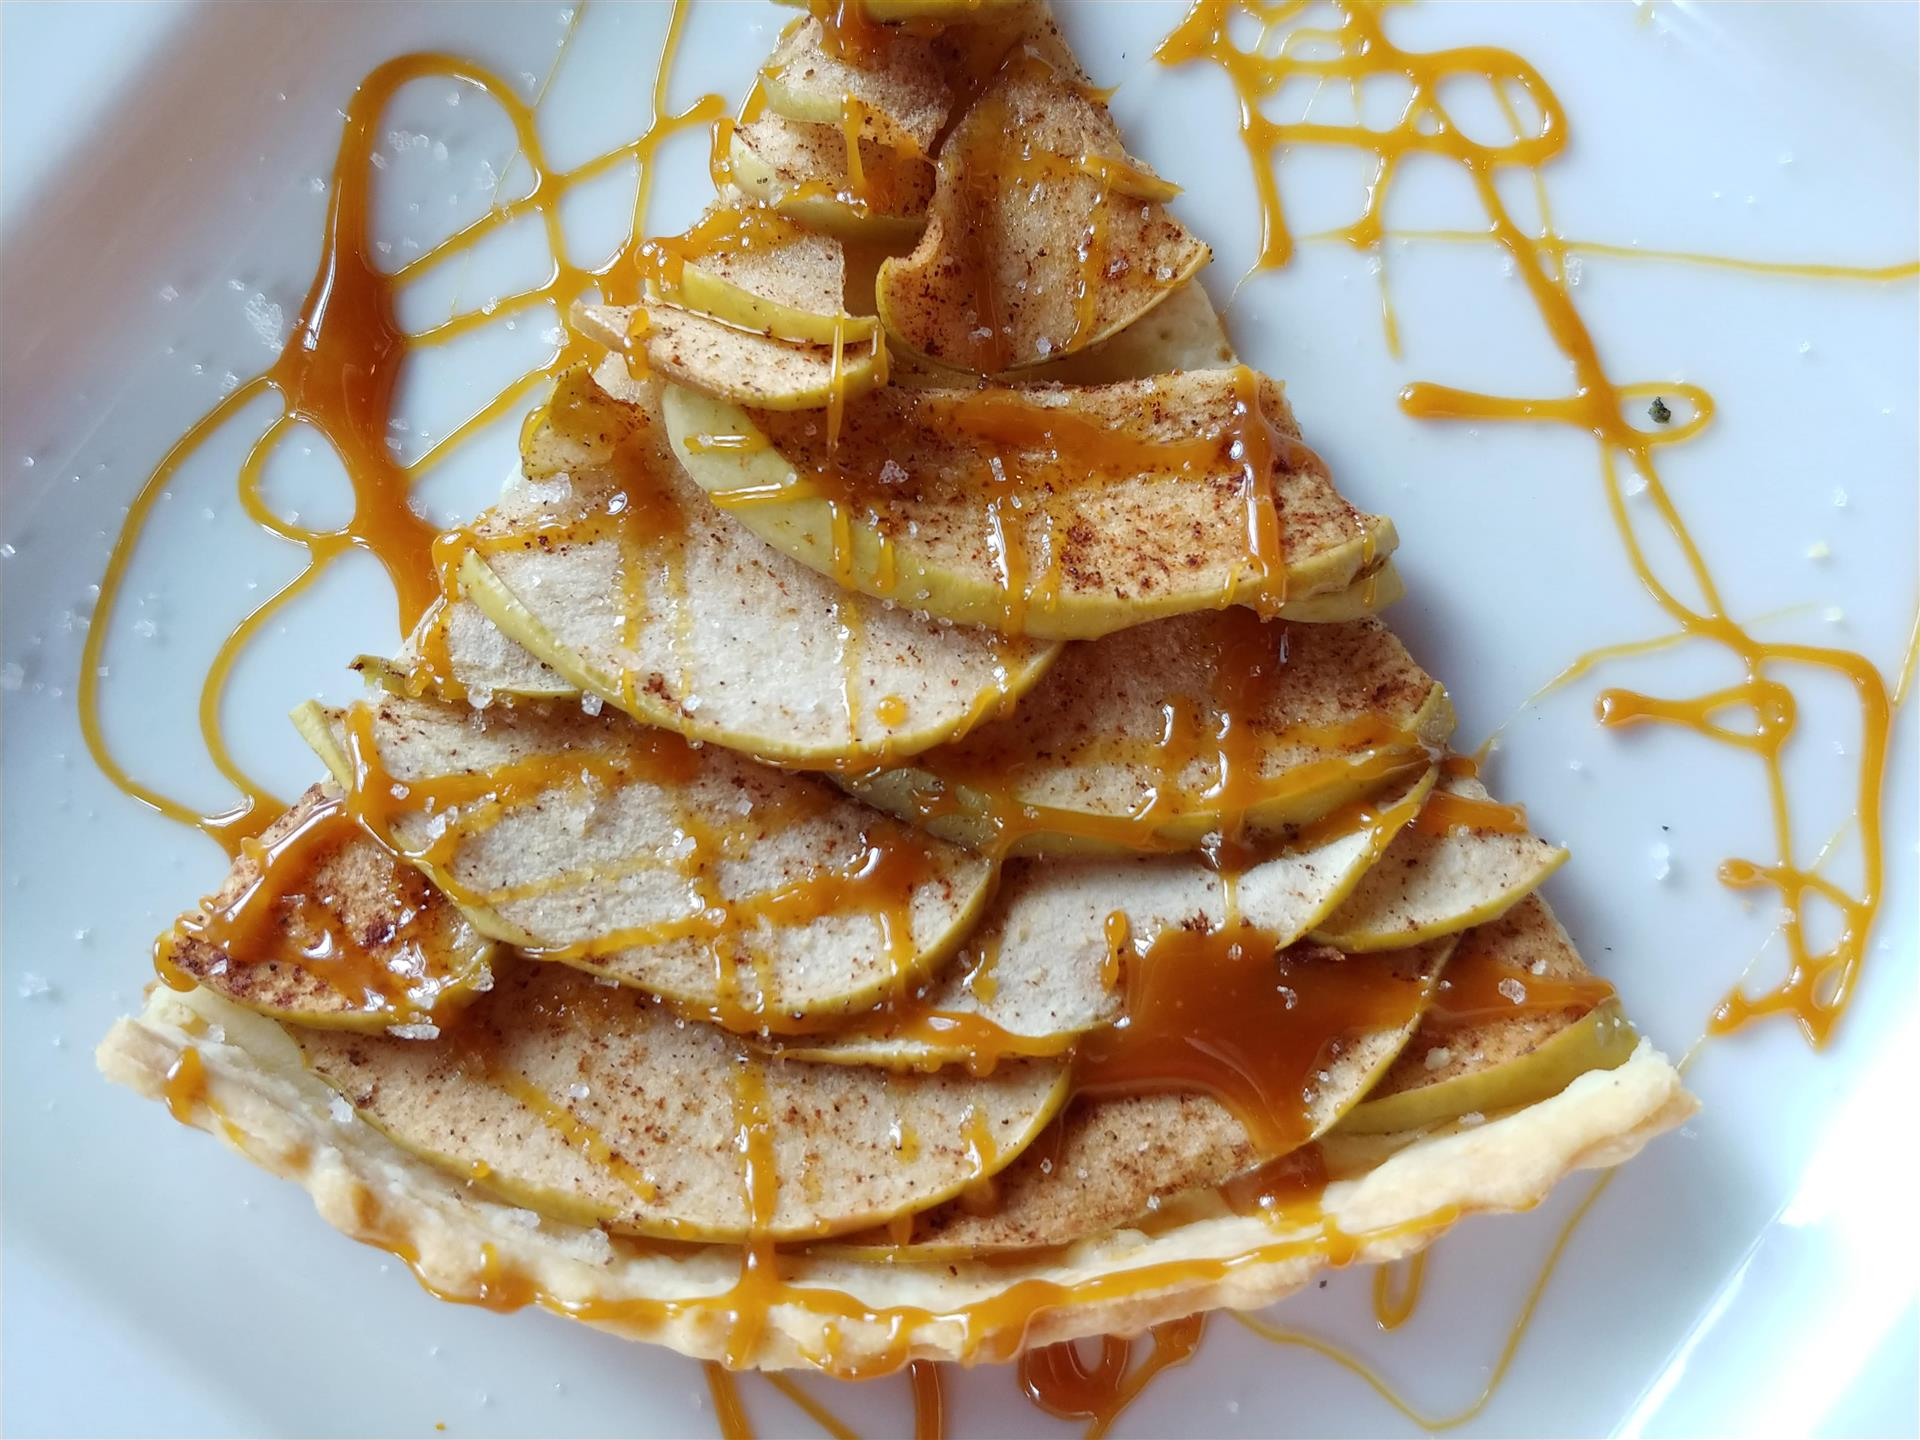 A slice of apple pie topped with cooked apples and a caramel drizzle